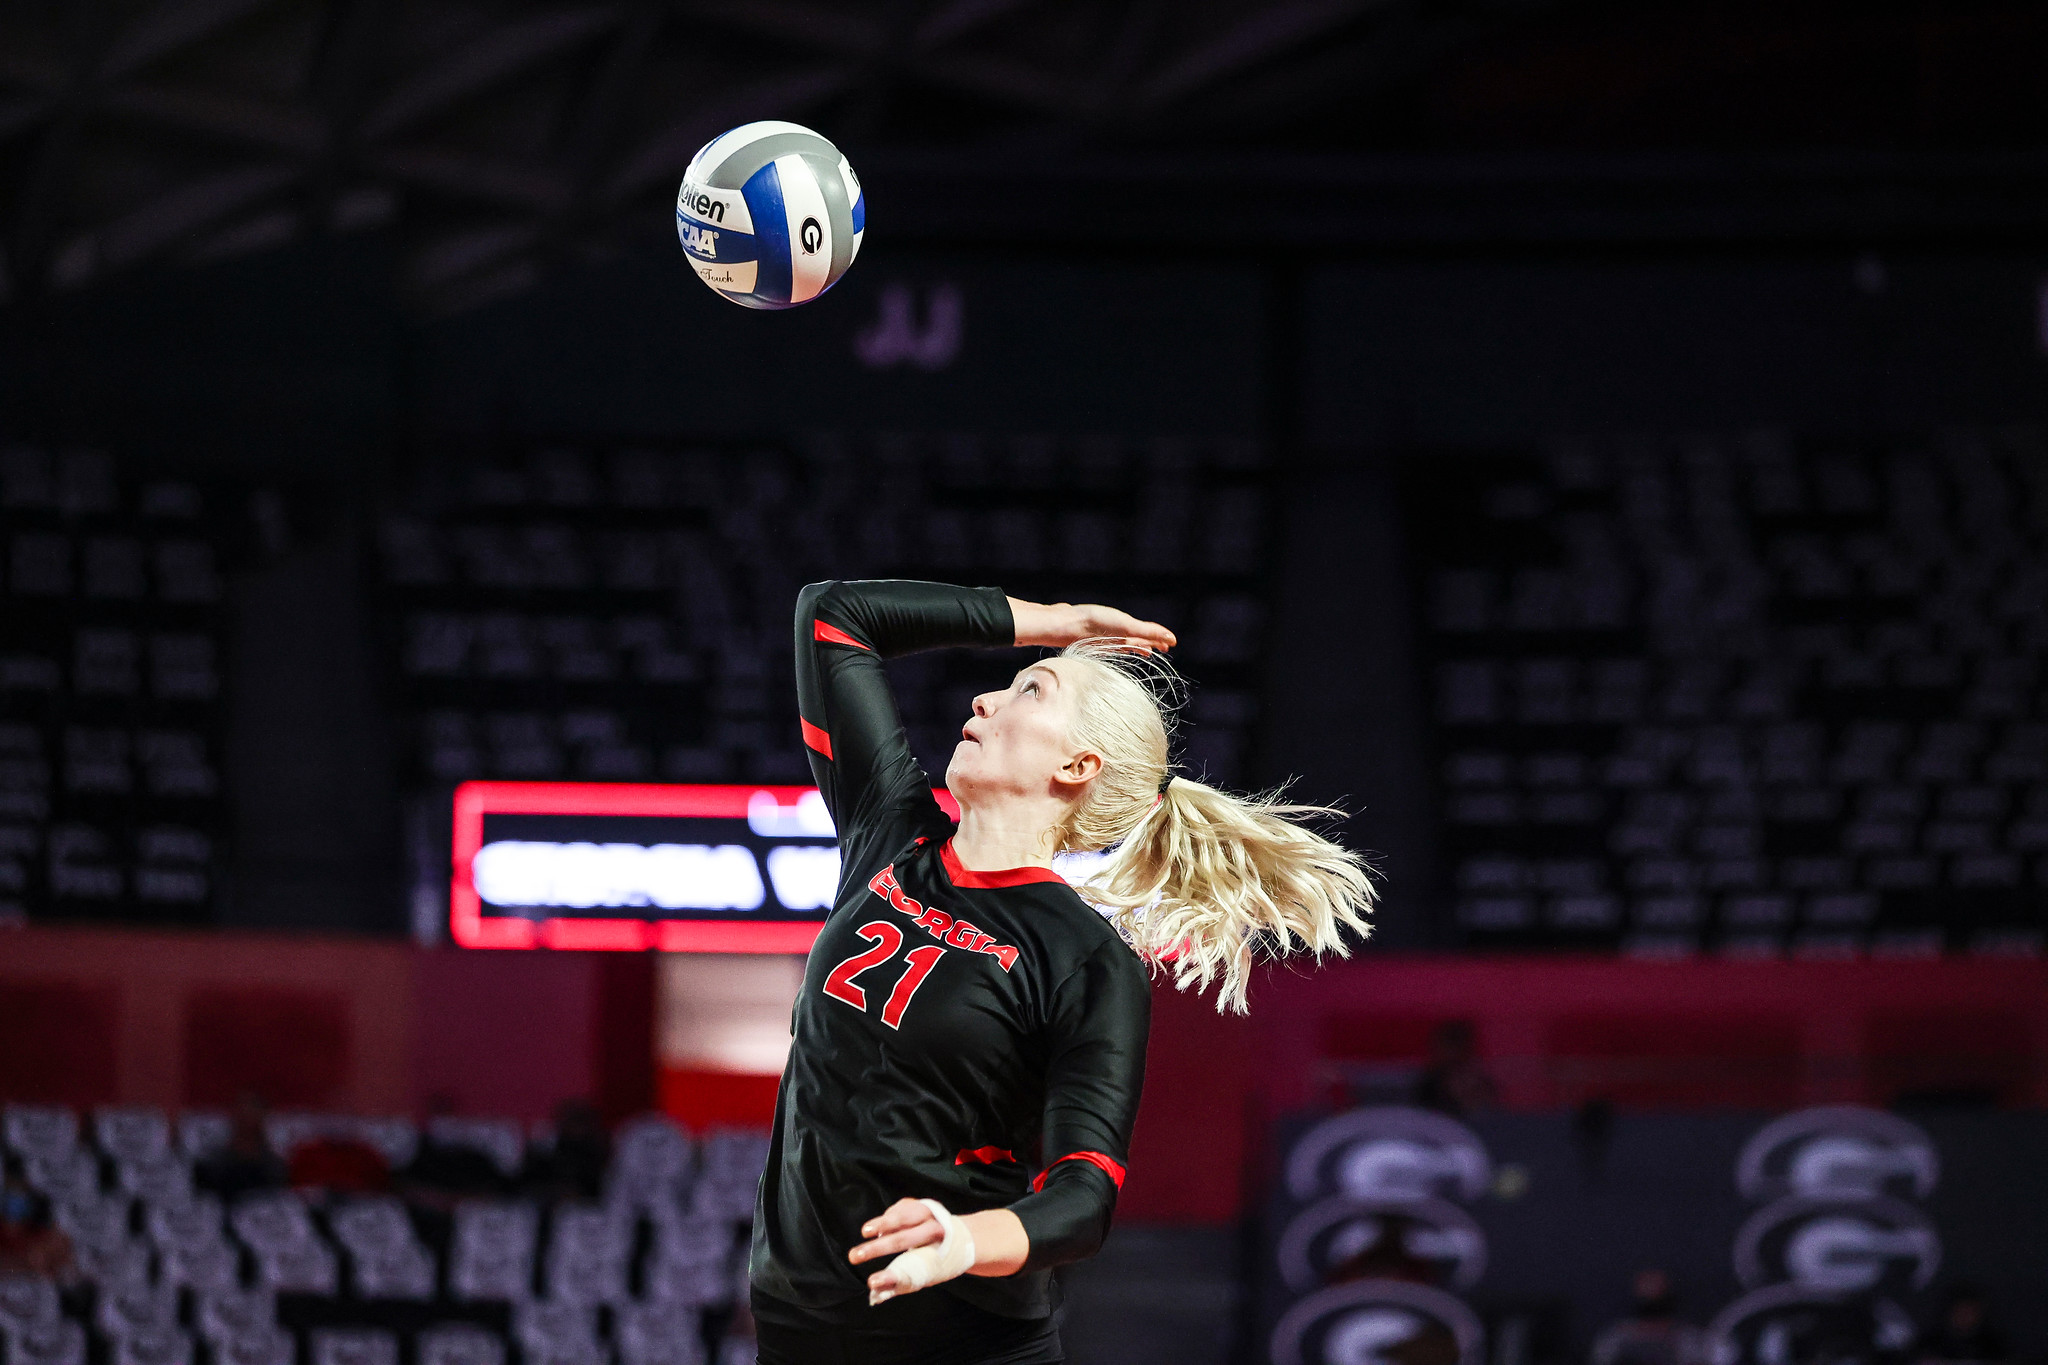 Georgia outside hitter Amber Stivrins (21) during a match against Texas A&M at Stegeman Coliseum in Athens, Ga., on Saturday, March 13, 2021. (Photo by Tony Walsh)